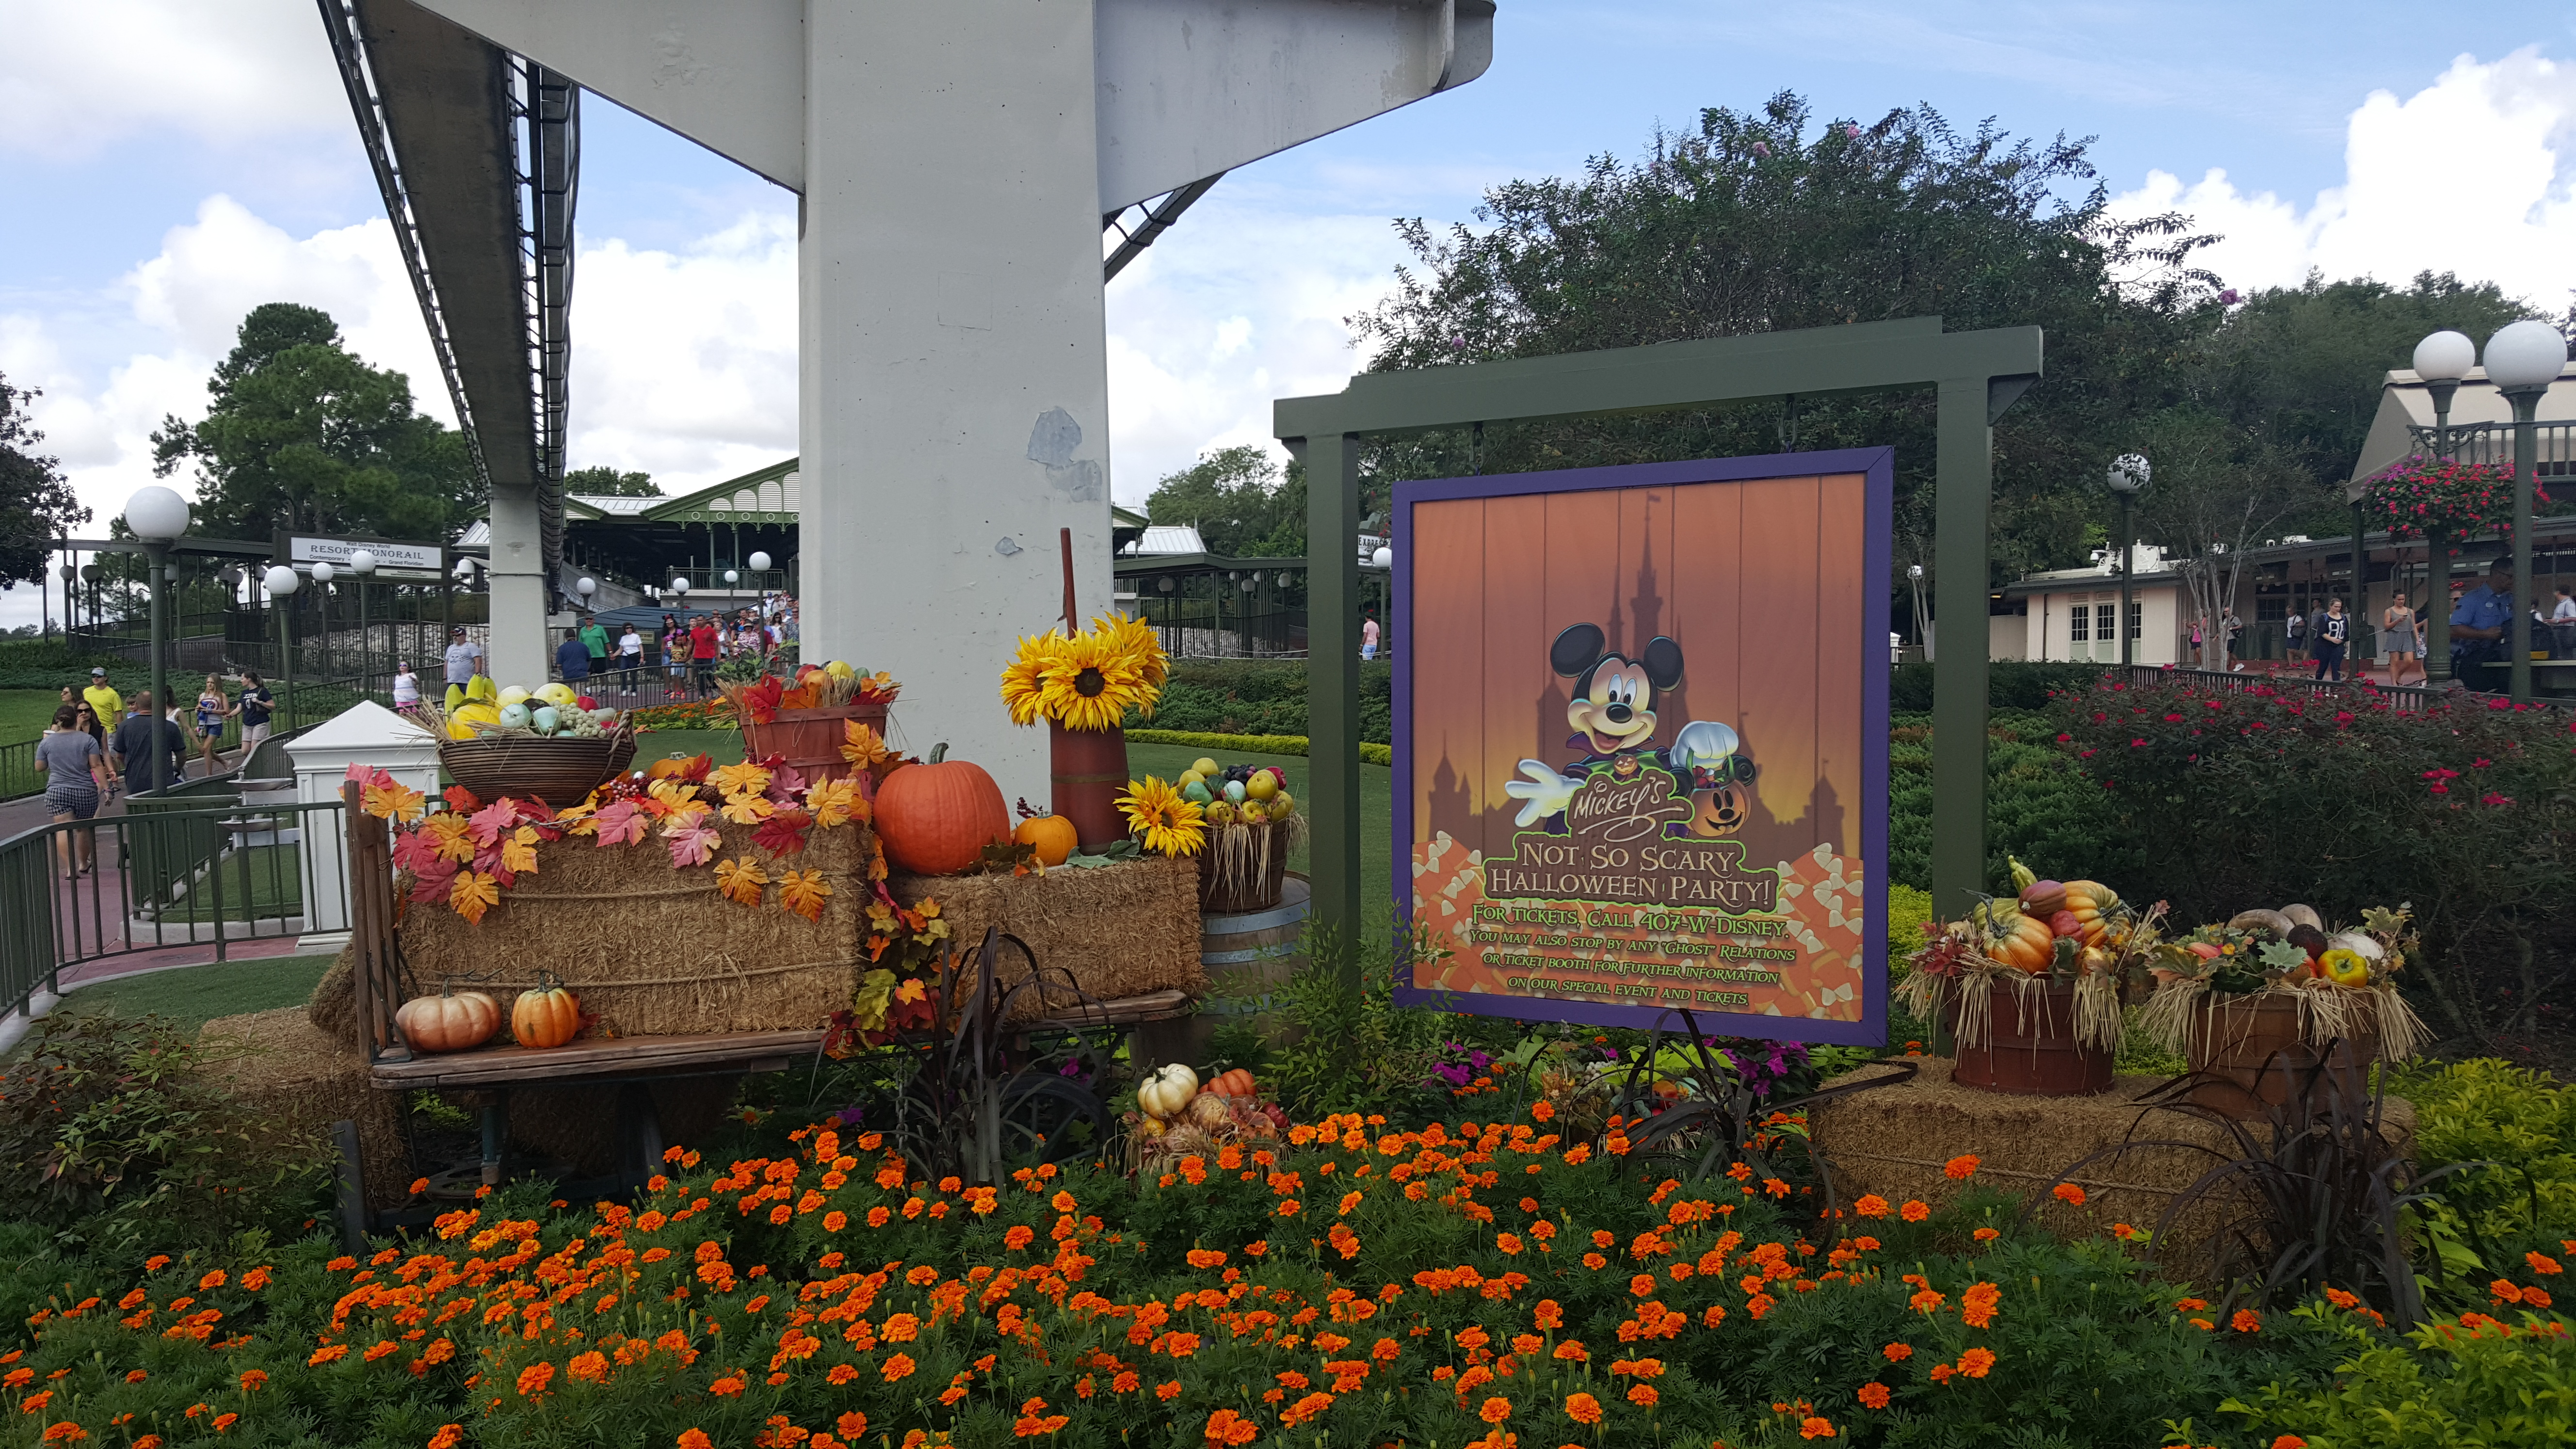 When Will Tickets Go on Sale for Mickey's Not So Scary Halloween Party?